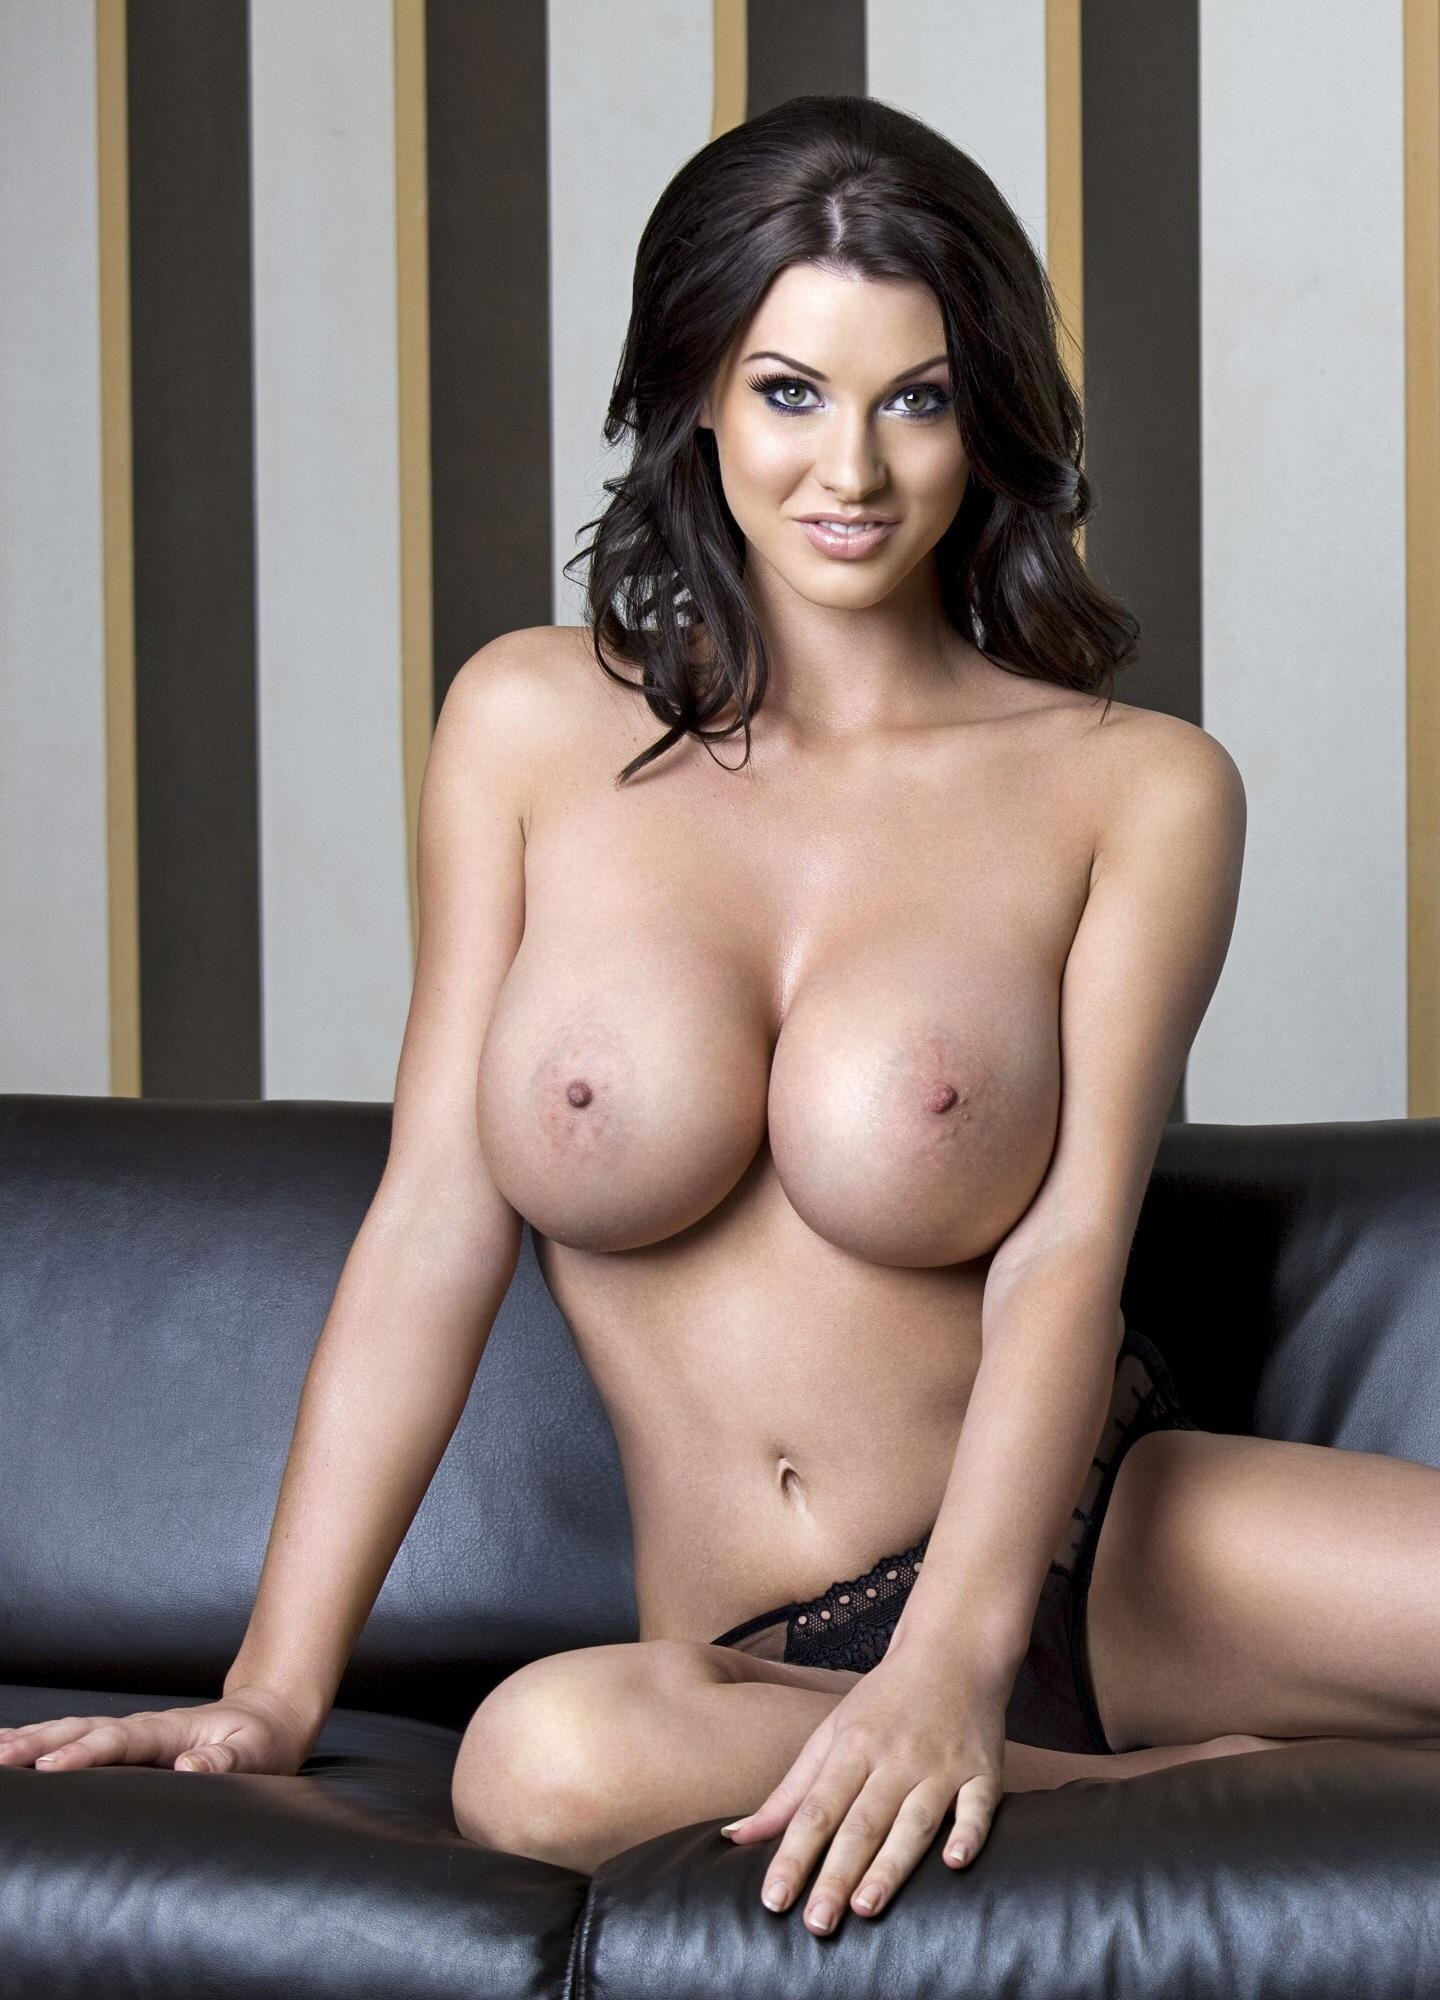 Alice goodwin hot sex fuk photos, facial and while and anal